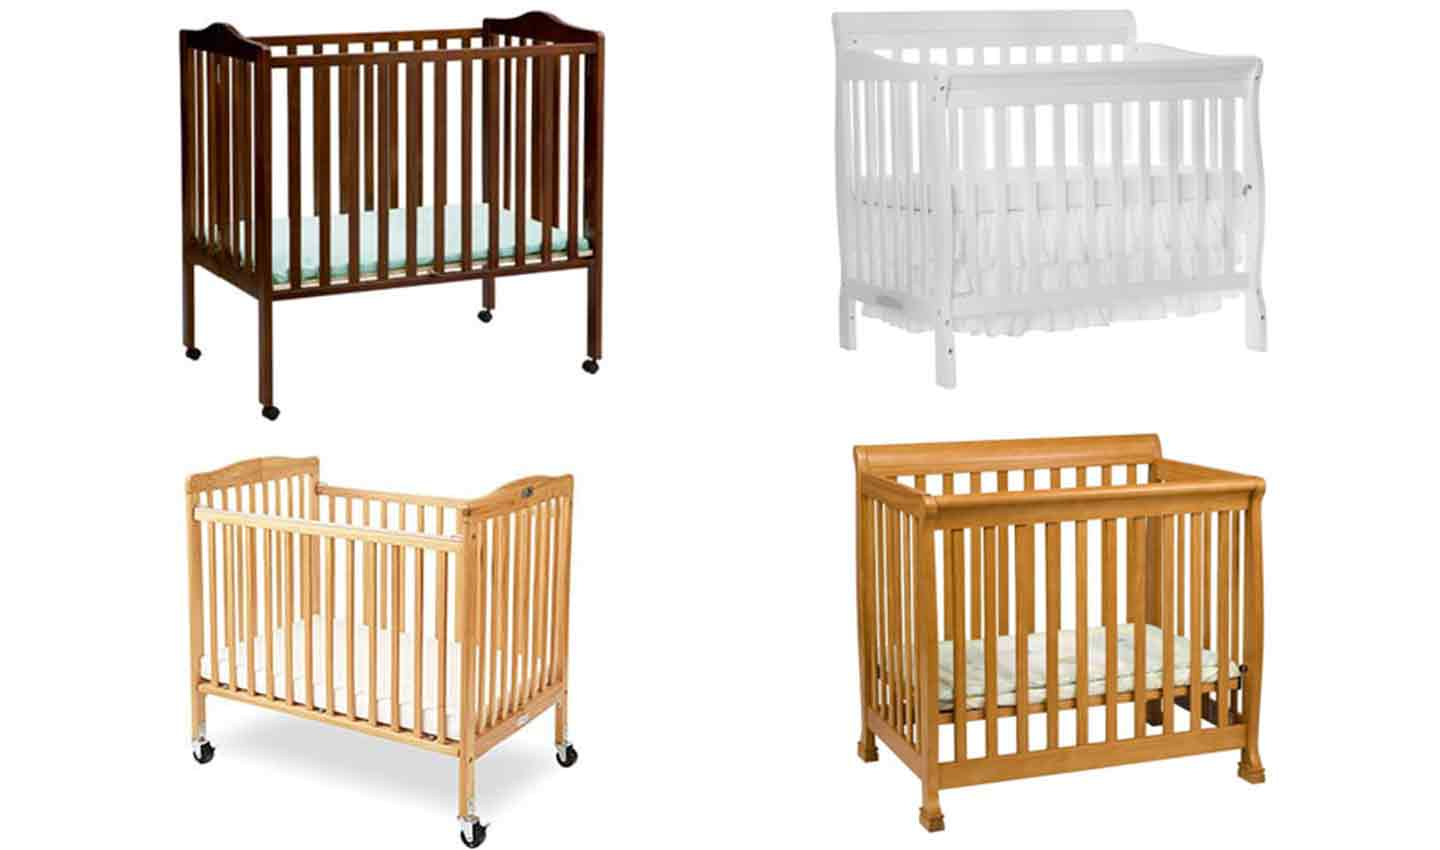 The 5 Best Small Baby Cribs To Buy In 2019